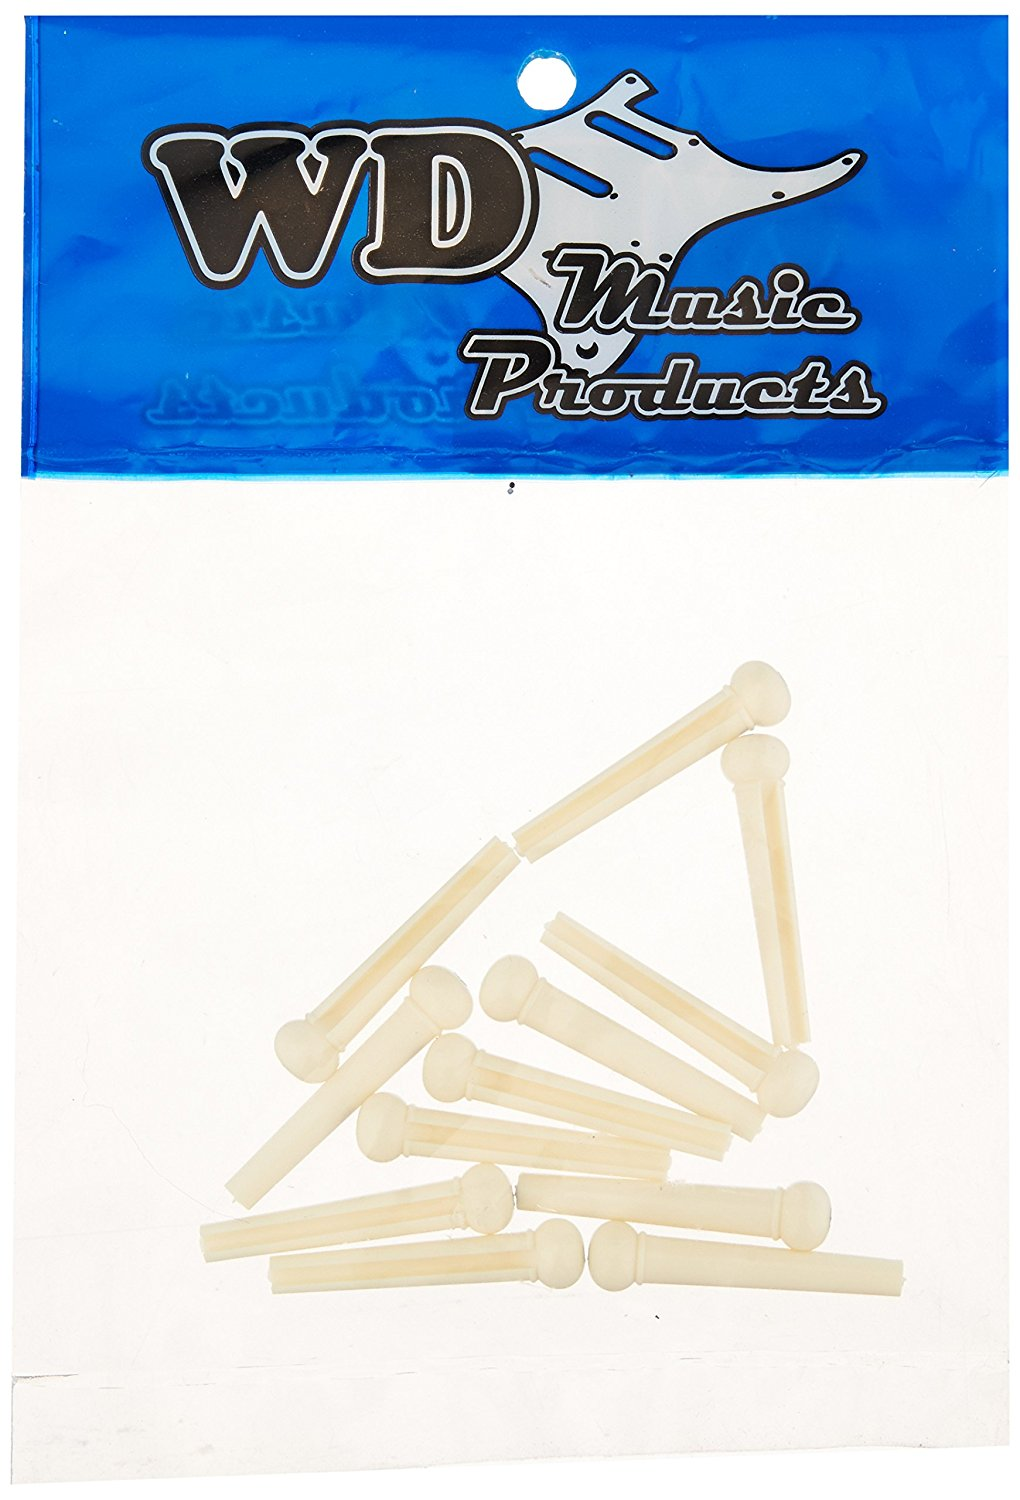 BPCDLX Deluxe Bridge Pins White Dot Bag Of 12, Bag of 12 By WD Music by